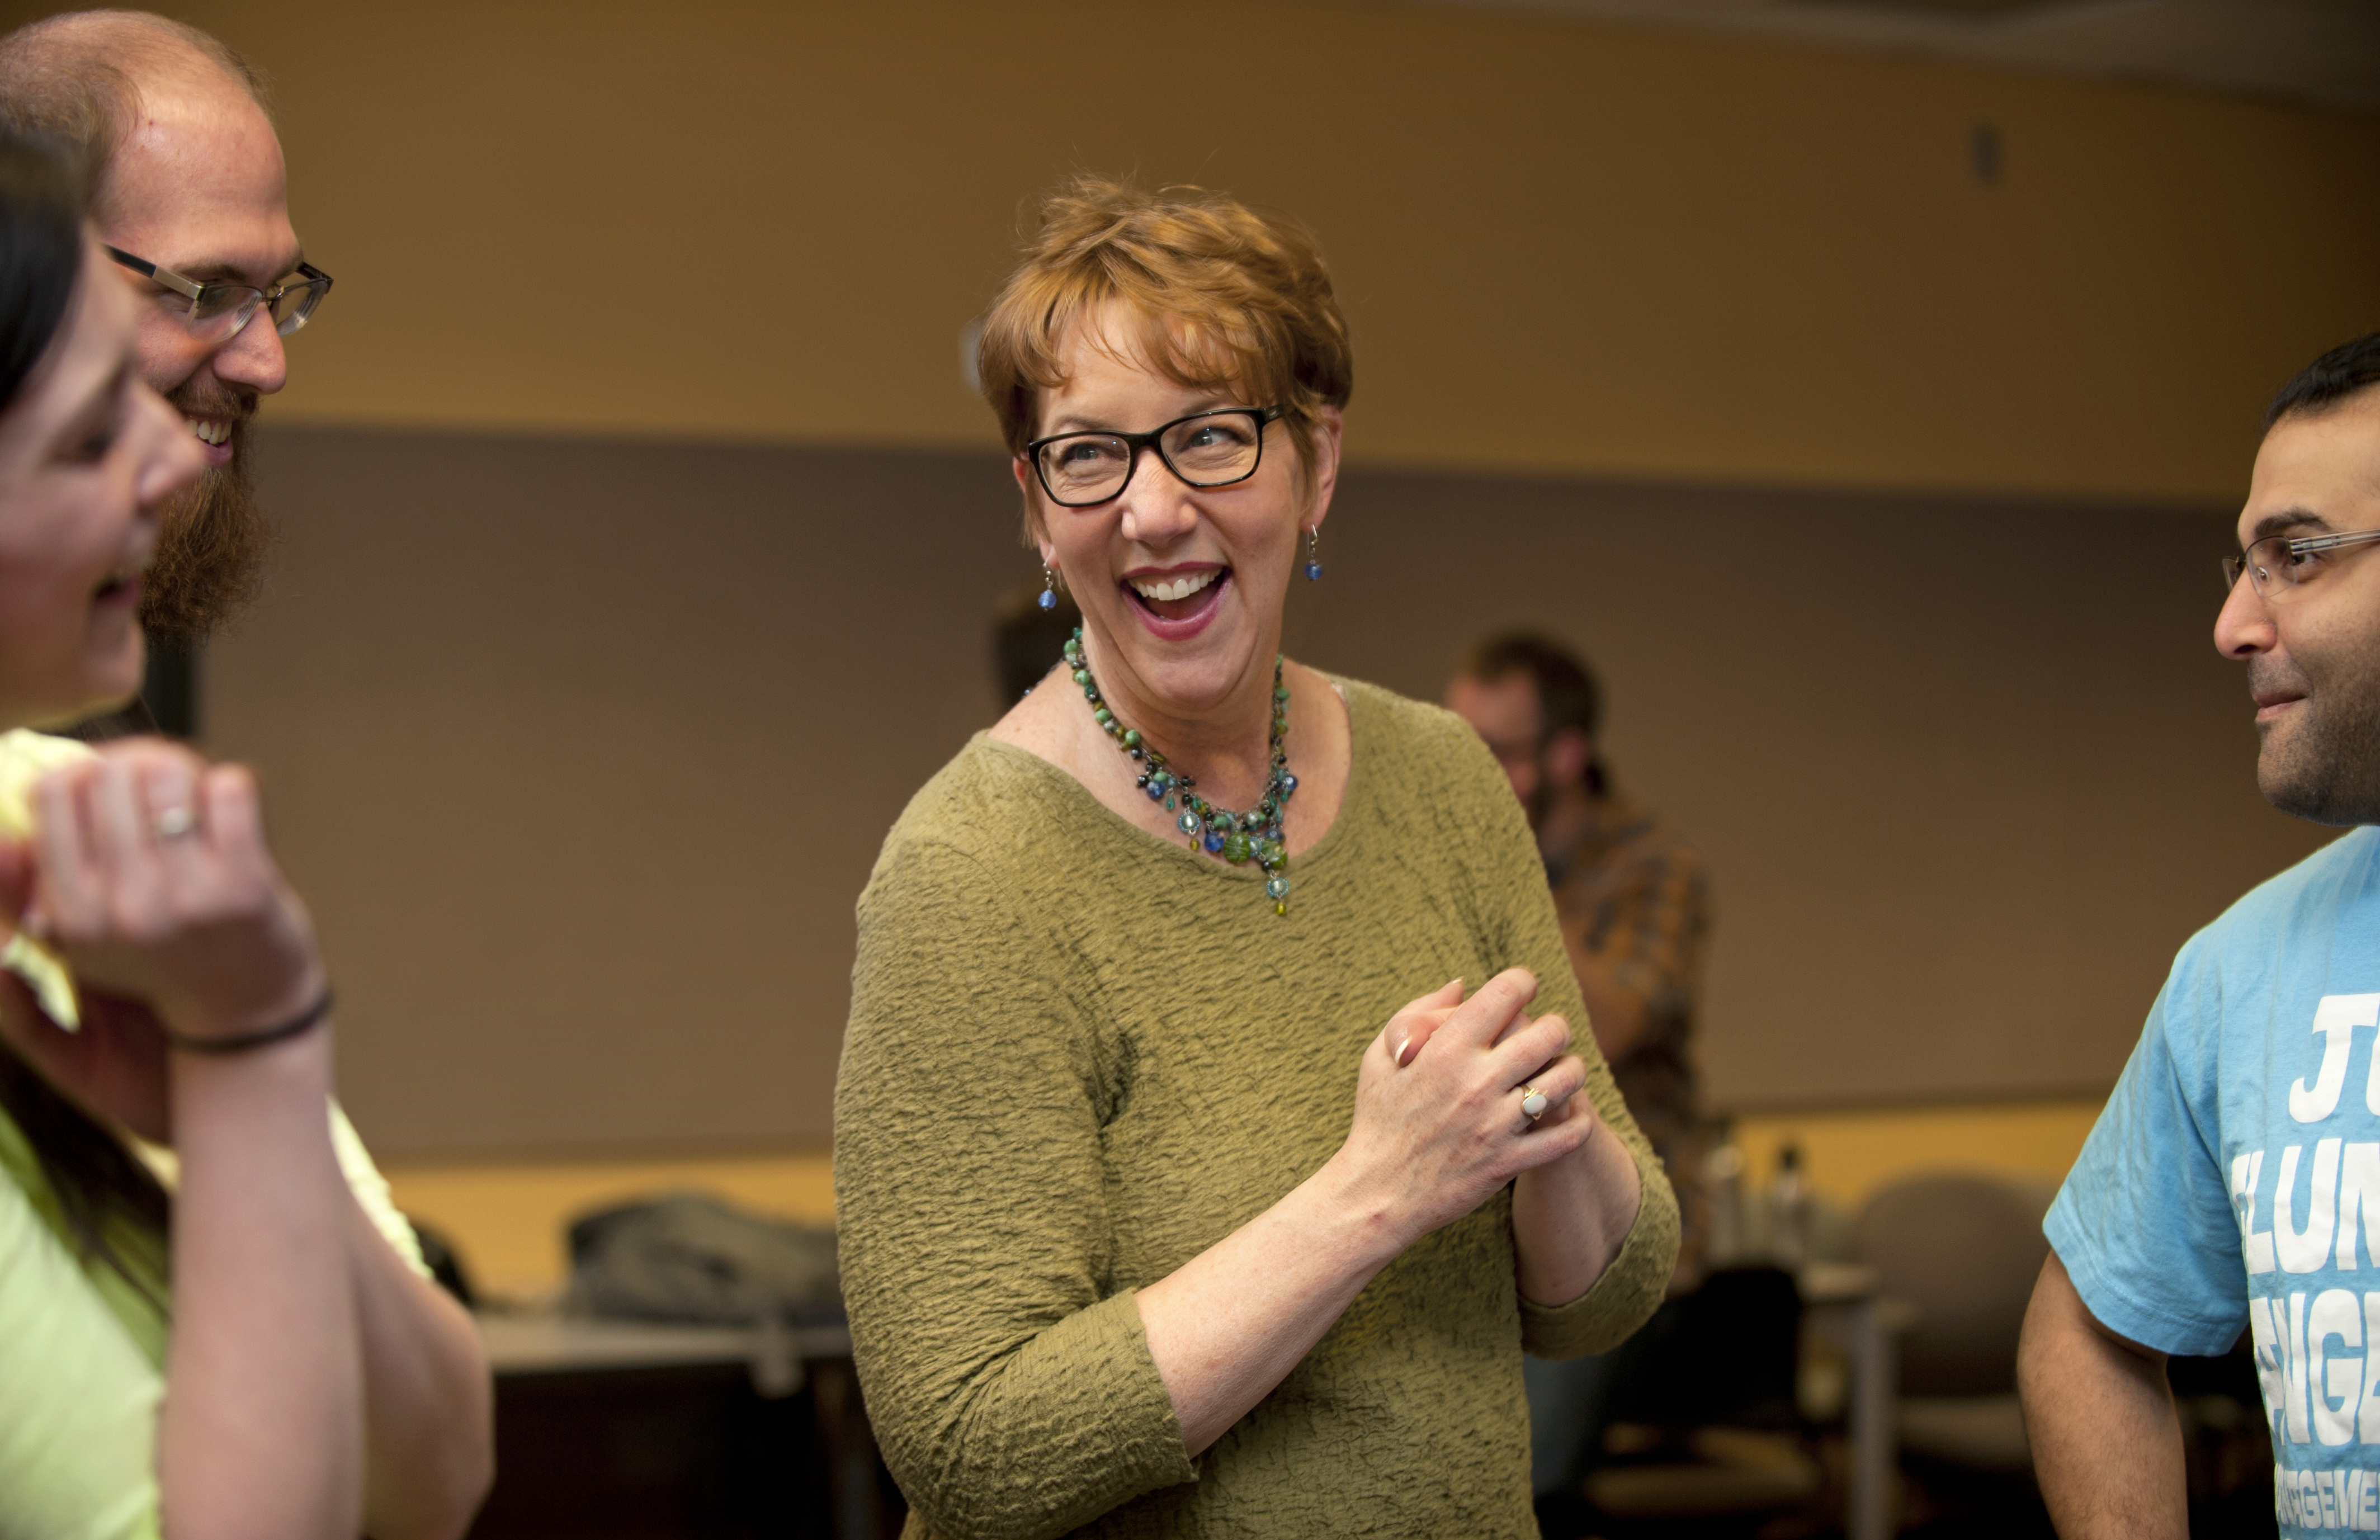 Patricia Raun laughs with students during her Communicating Science class.